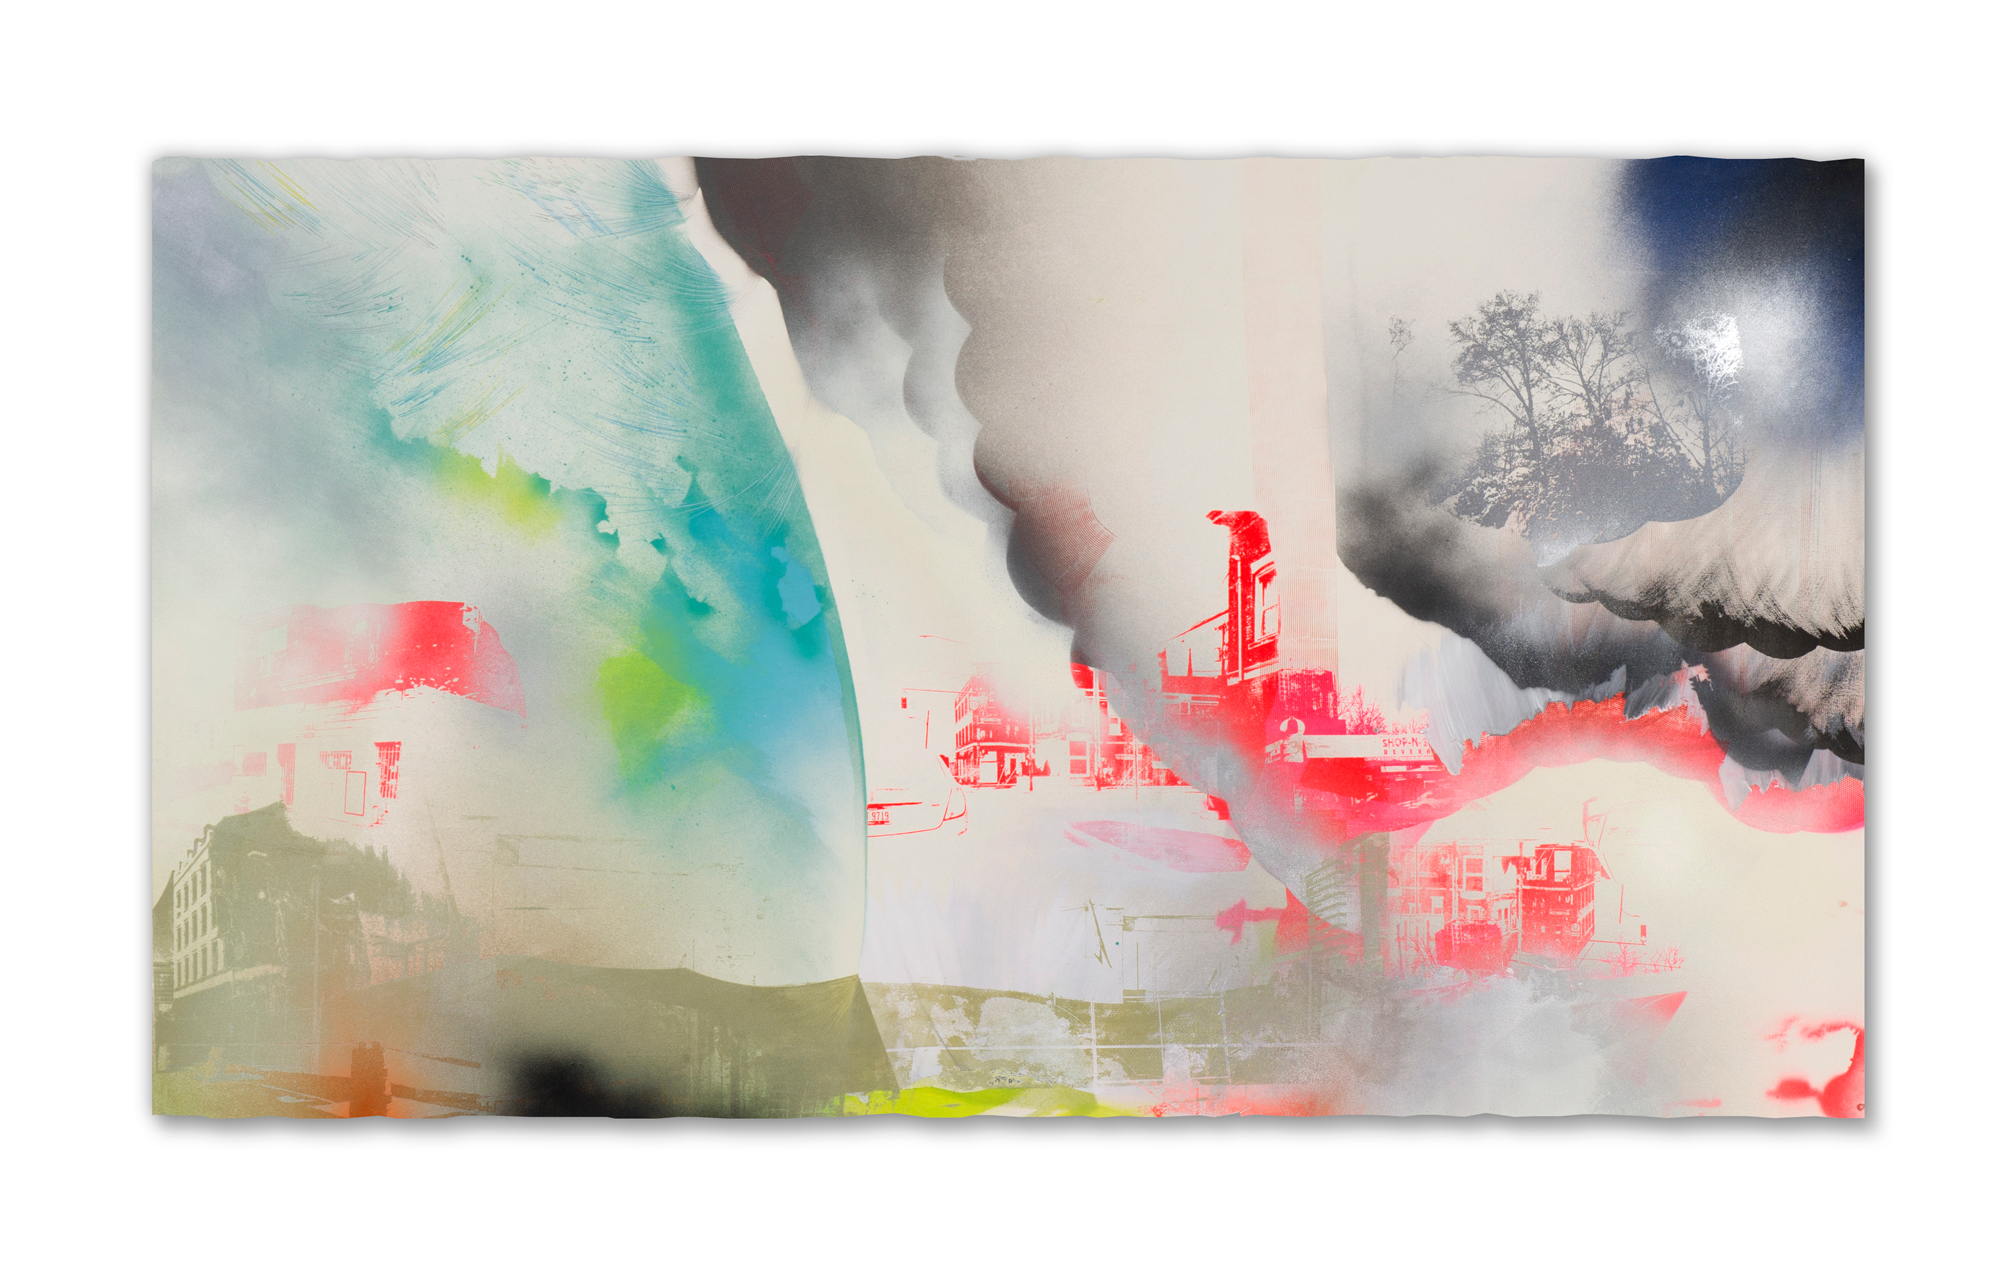 "Phosphorus ""runoff"" and favorable Lake conditions produce a bloom; the citizens of Toledo can't always drink the water,  2015 Screen print, paper lithography, acrylic, Sumi ink, spray paint and pencil on paper  57 in W x 42 in H"